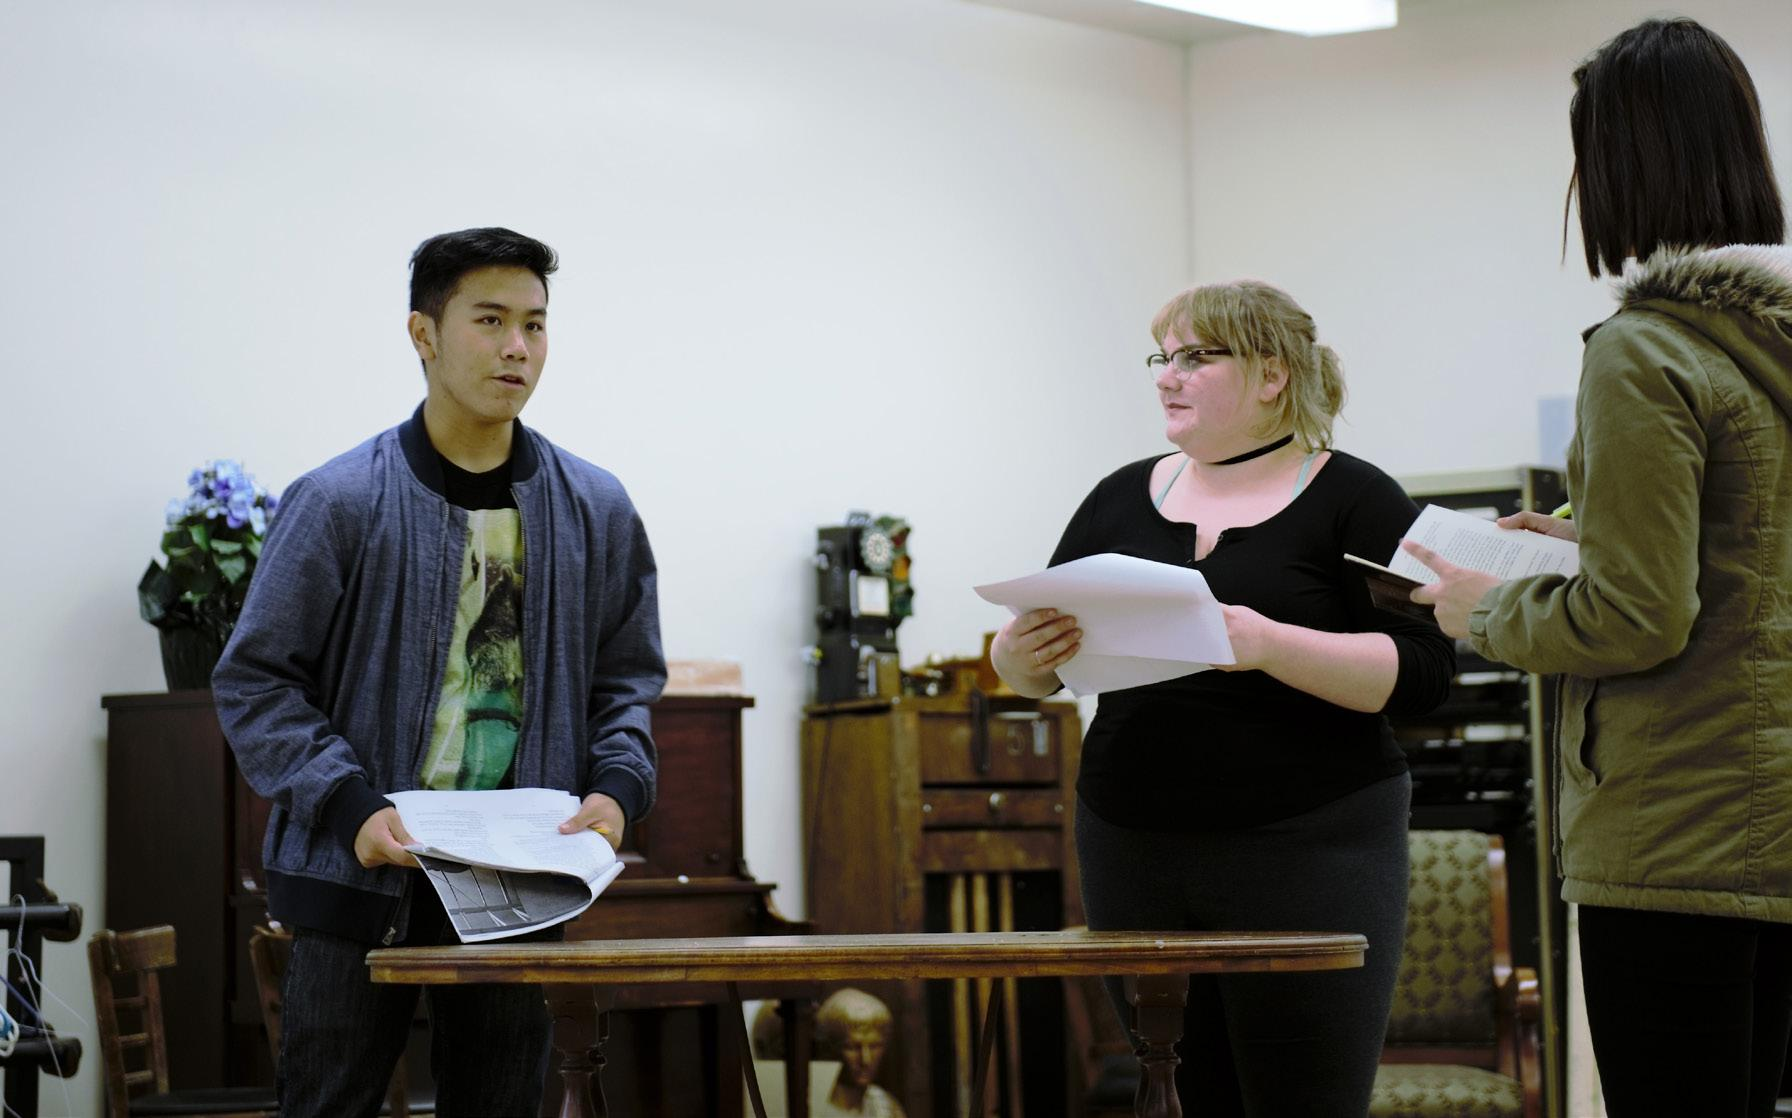 """Cast members rehearse lines for upcoming play """"Middletown""""."""